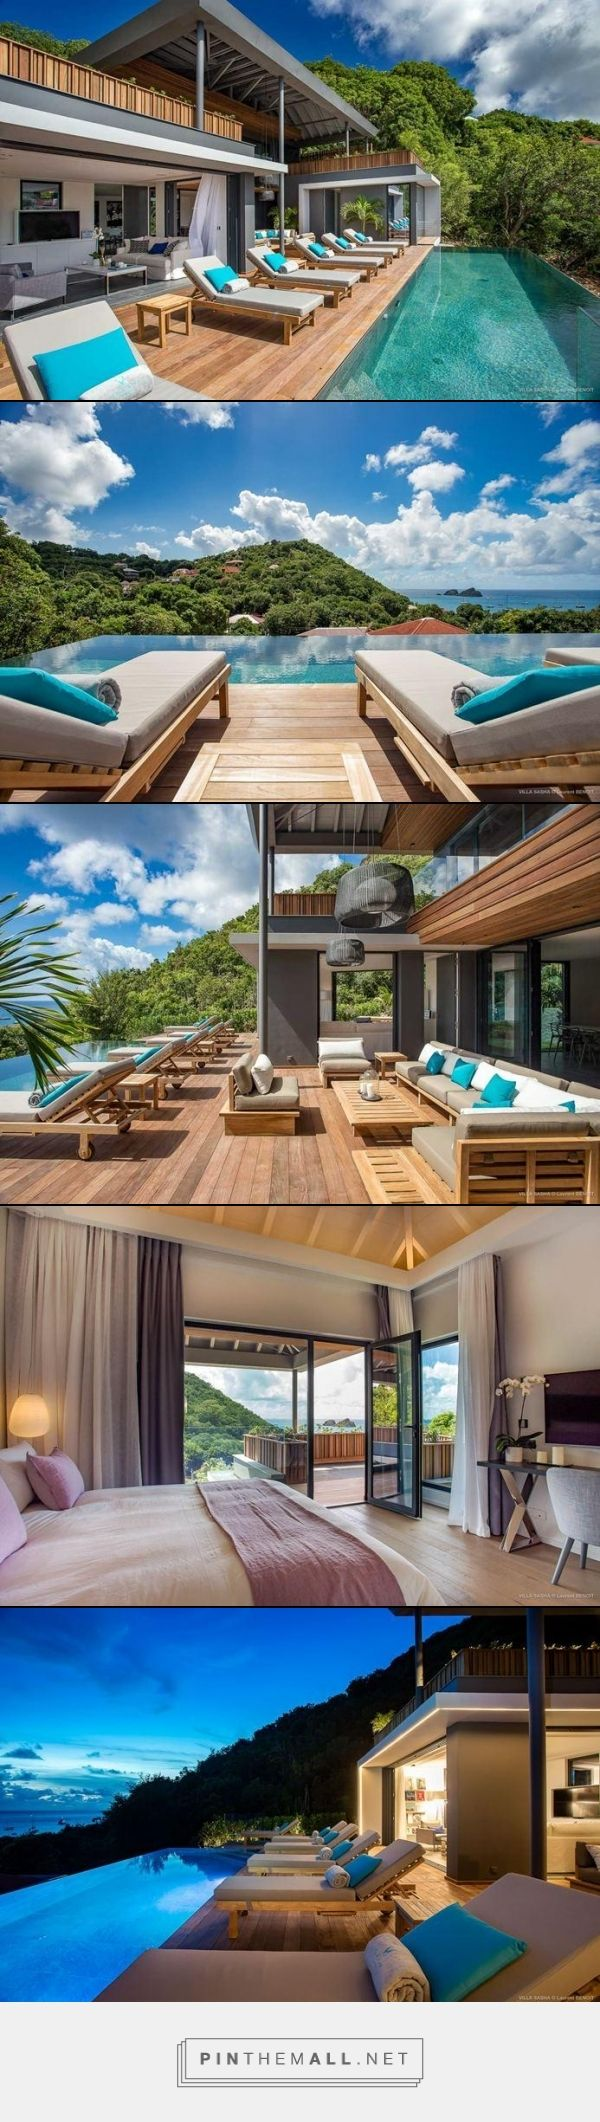 Villa Sasha- Corossol, St. Barthelemy- WIMCO Villas- 4 bed 4 baths #stbarths #caribbean #travel #vacation